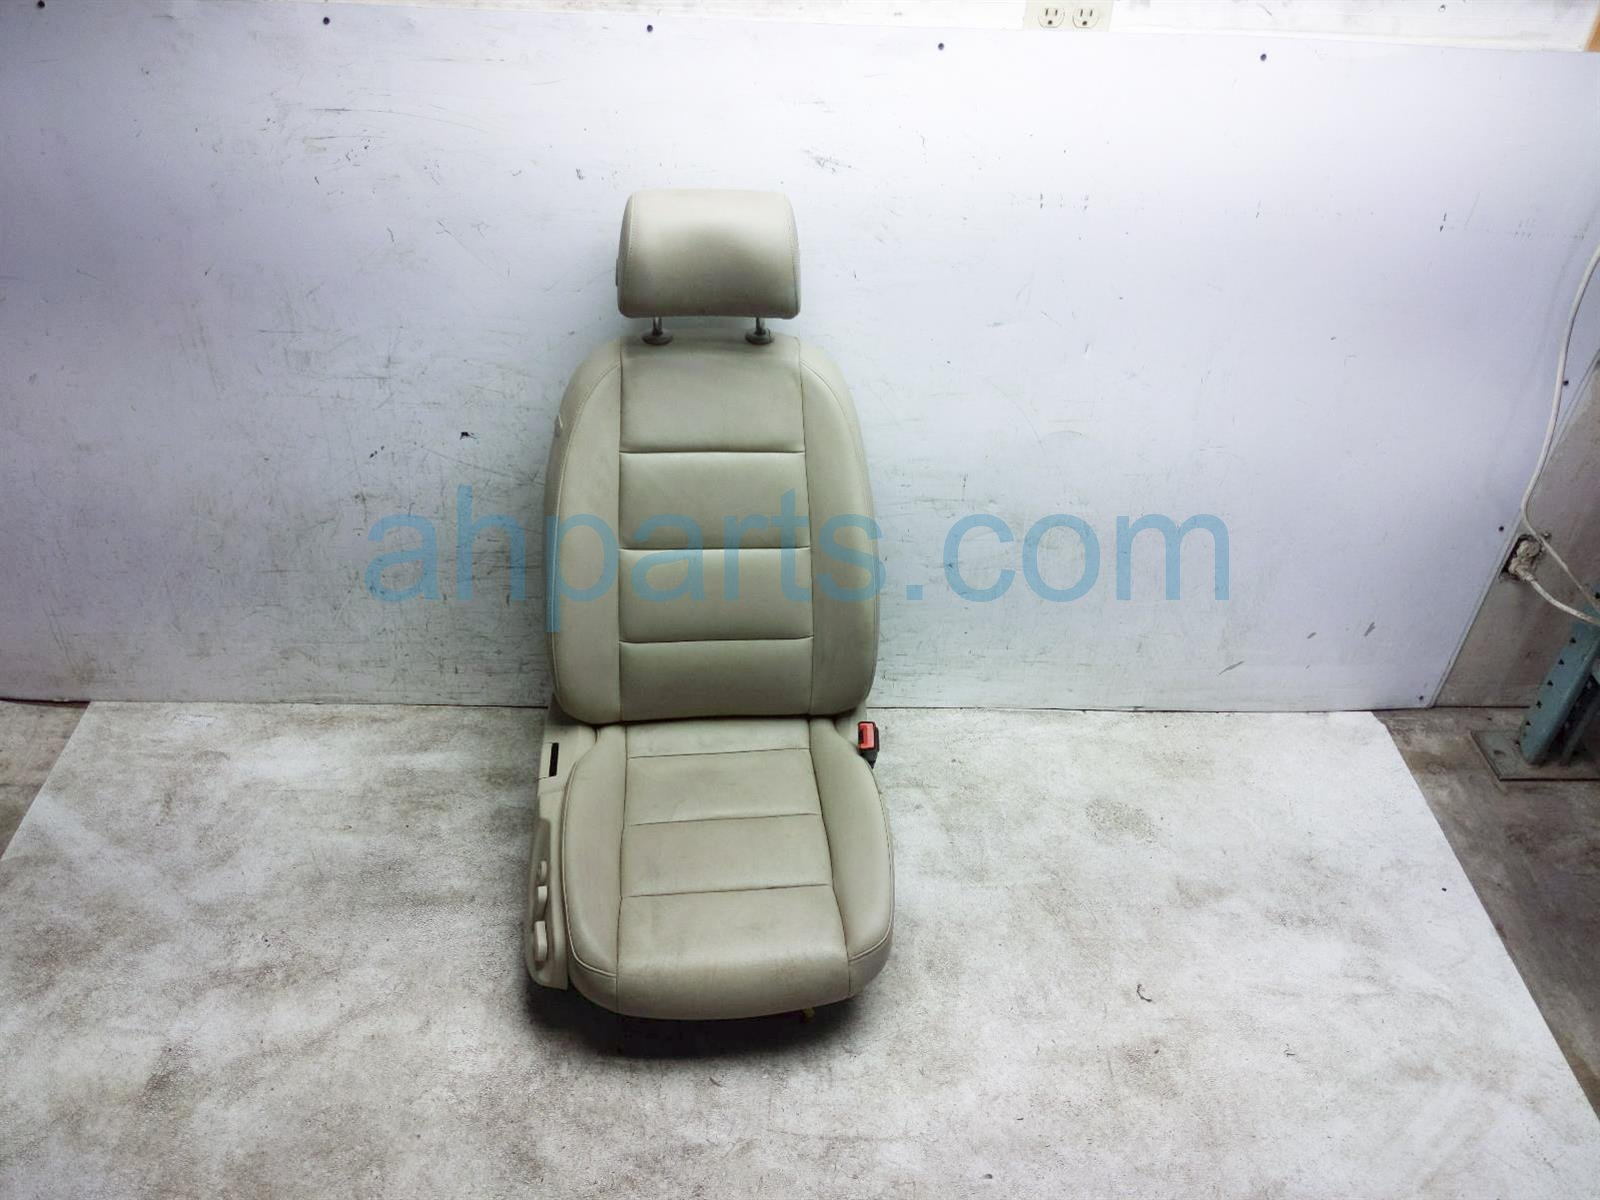 2011 Audi A6 Audi Front Passenger Seat   Tan   W/ Airbag 4F0 881 406 AS VTS Replacement